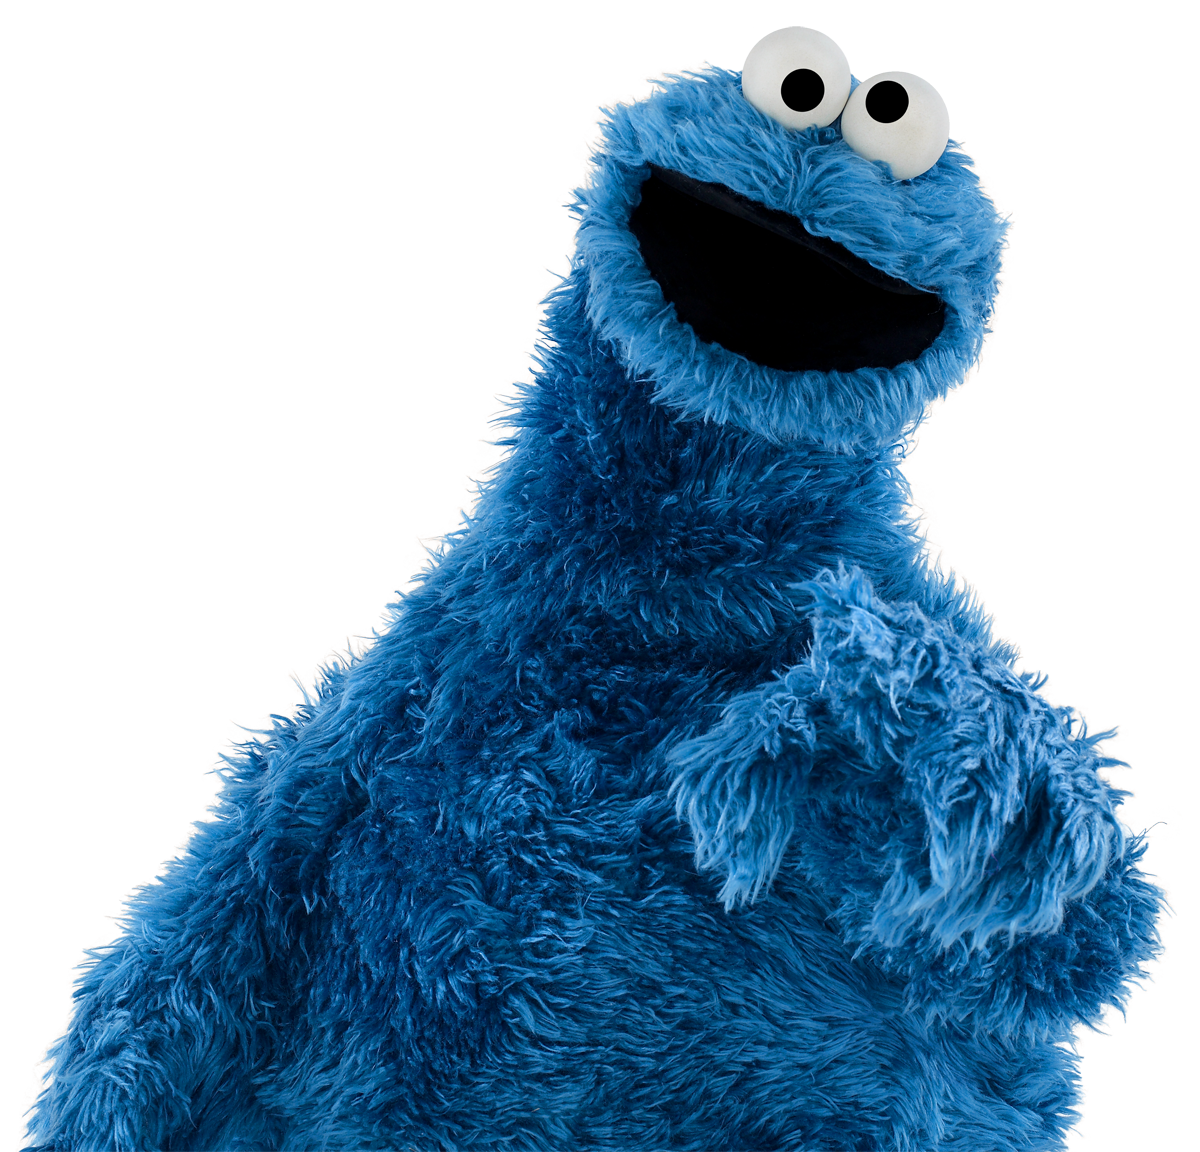 Cookie monster head png. Hd transparent images backgrounds